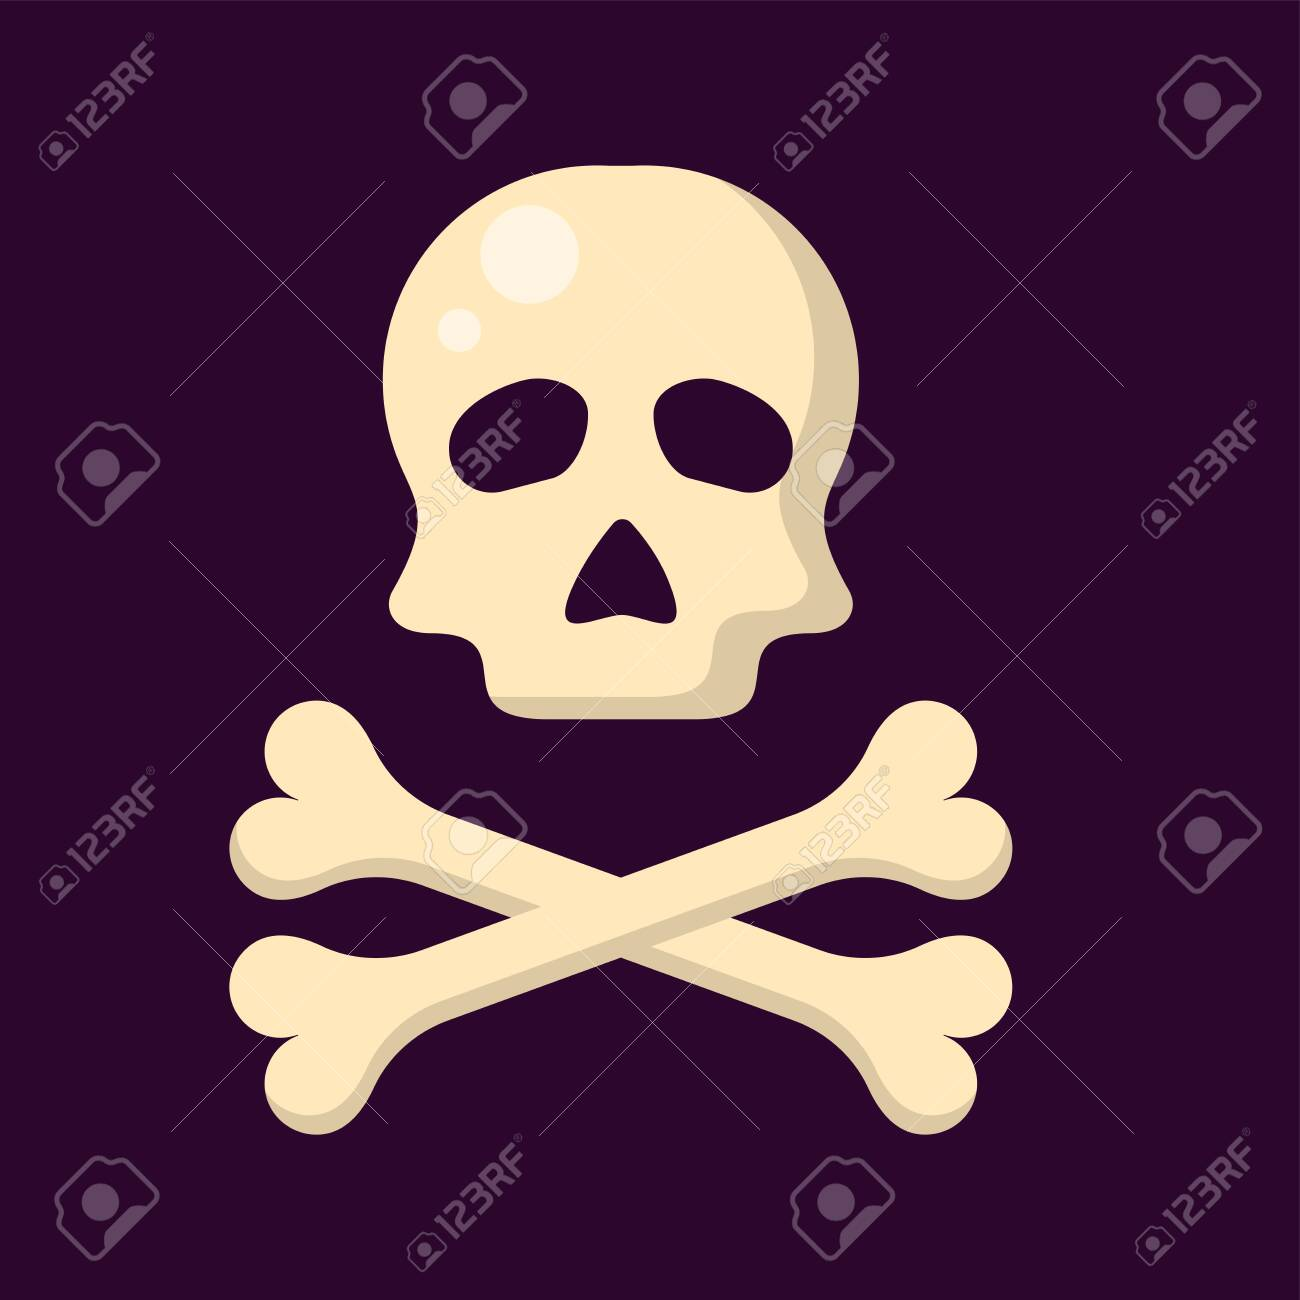 skull and crossbones on a dark background in flat style - 129013692